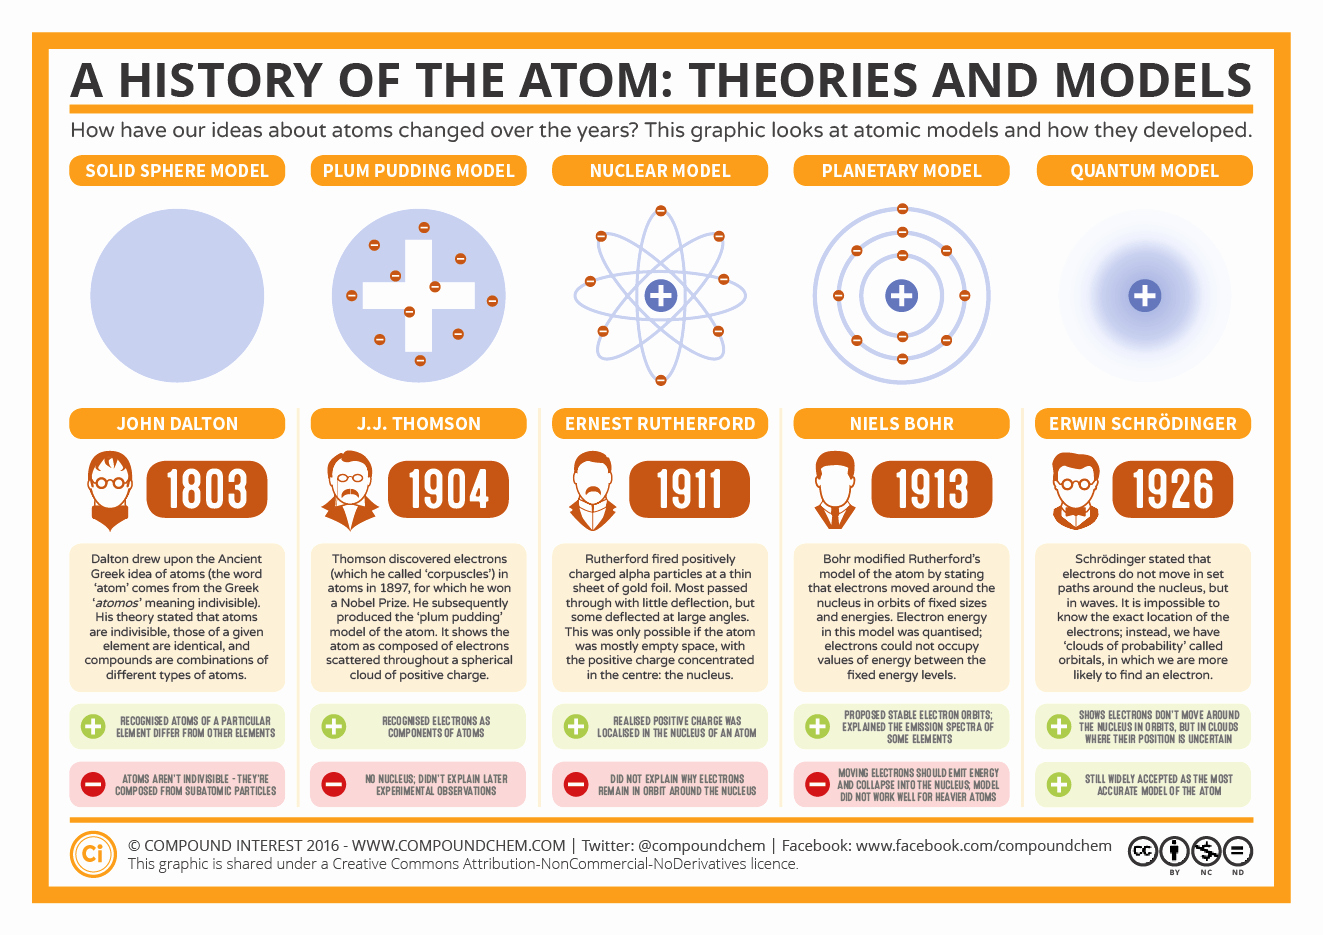 Development Of atomic theory Worksheet Inspirational the History Of the atom – theories and Models